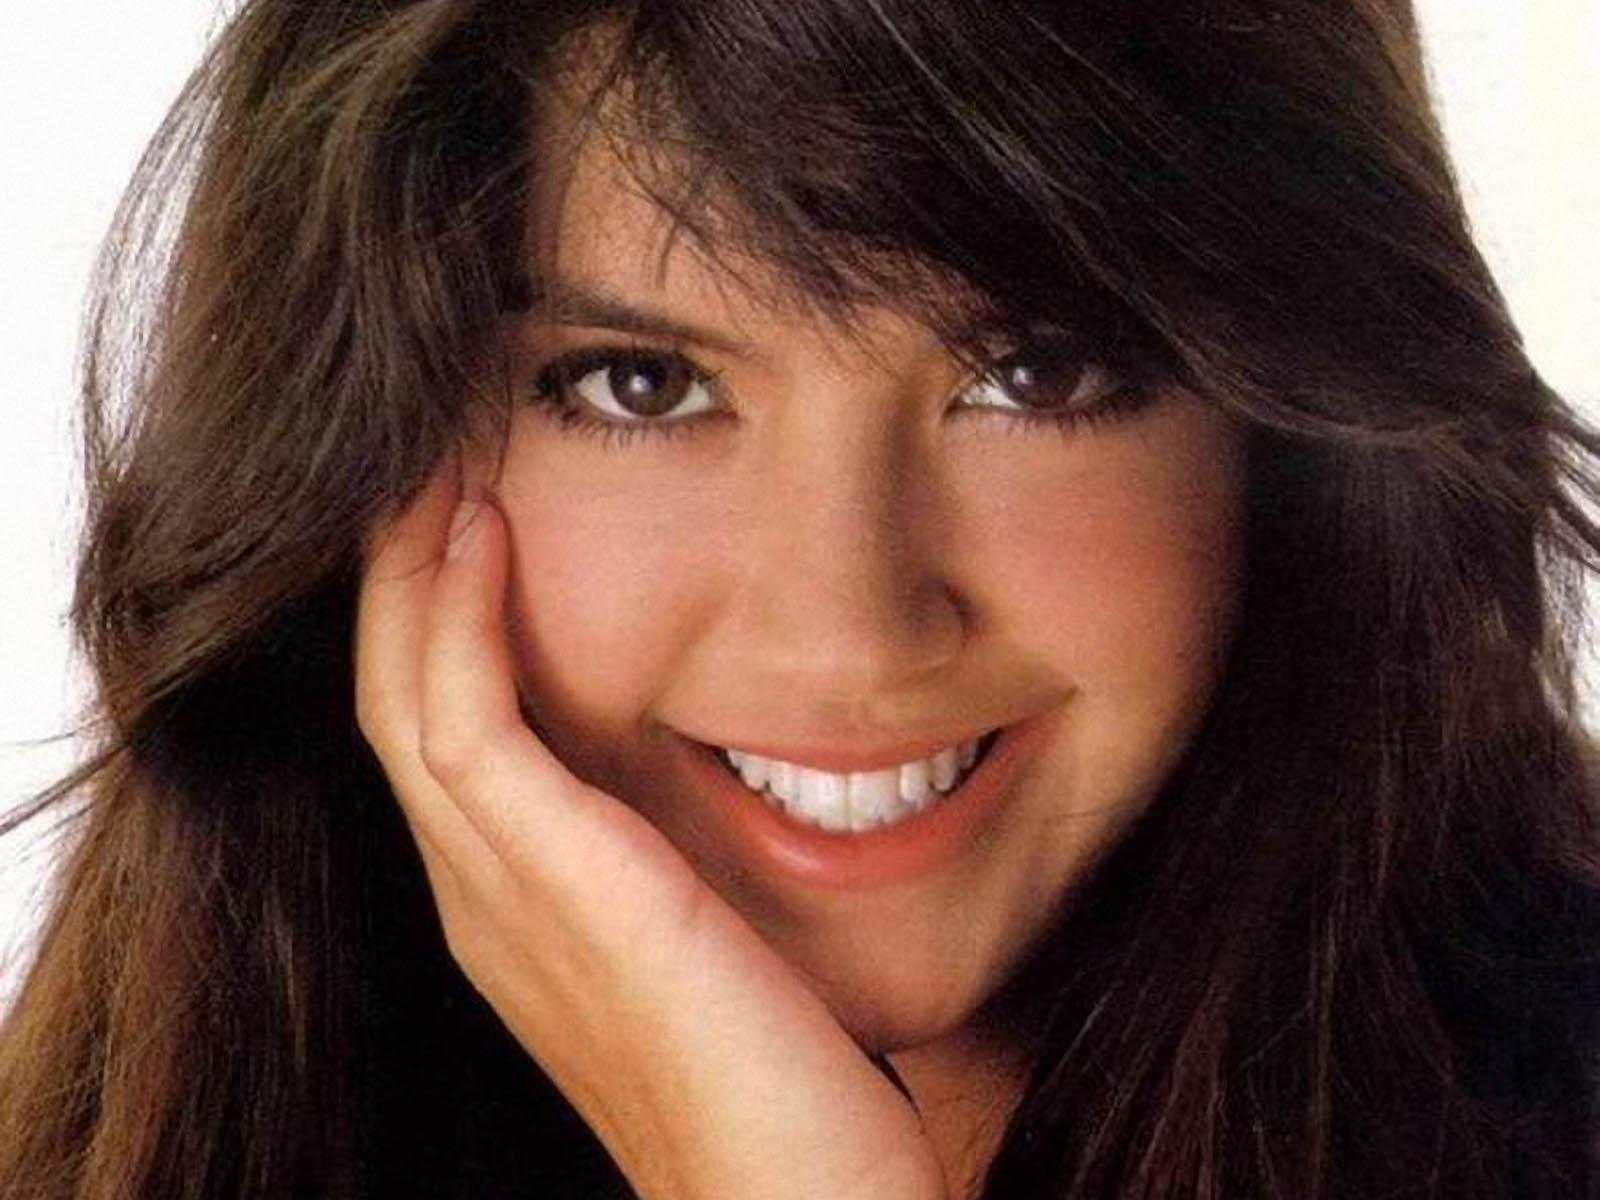 1600x1200 - Phoebe Cates Wallpapers 18